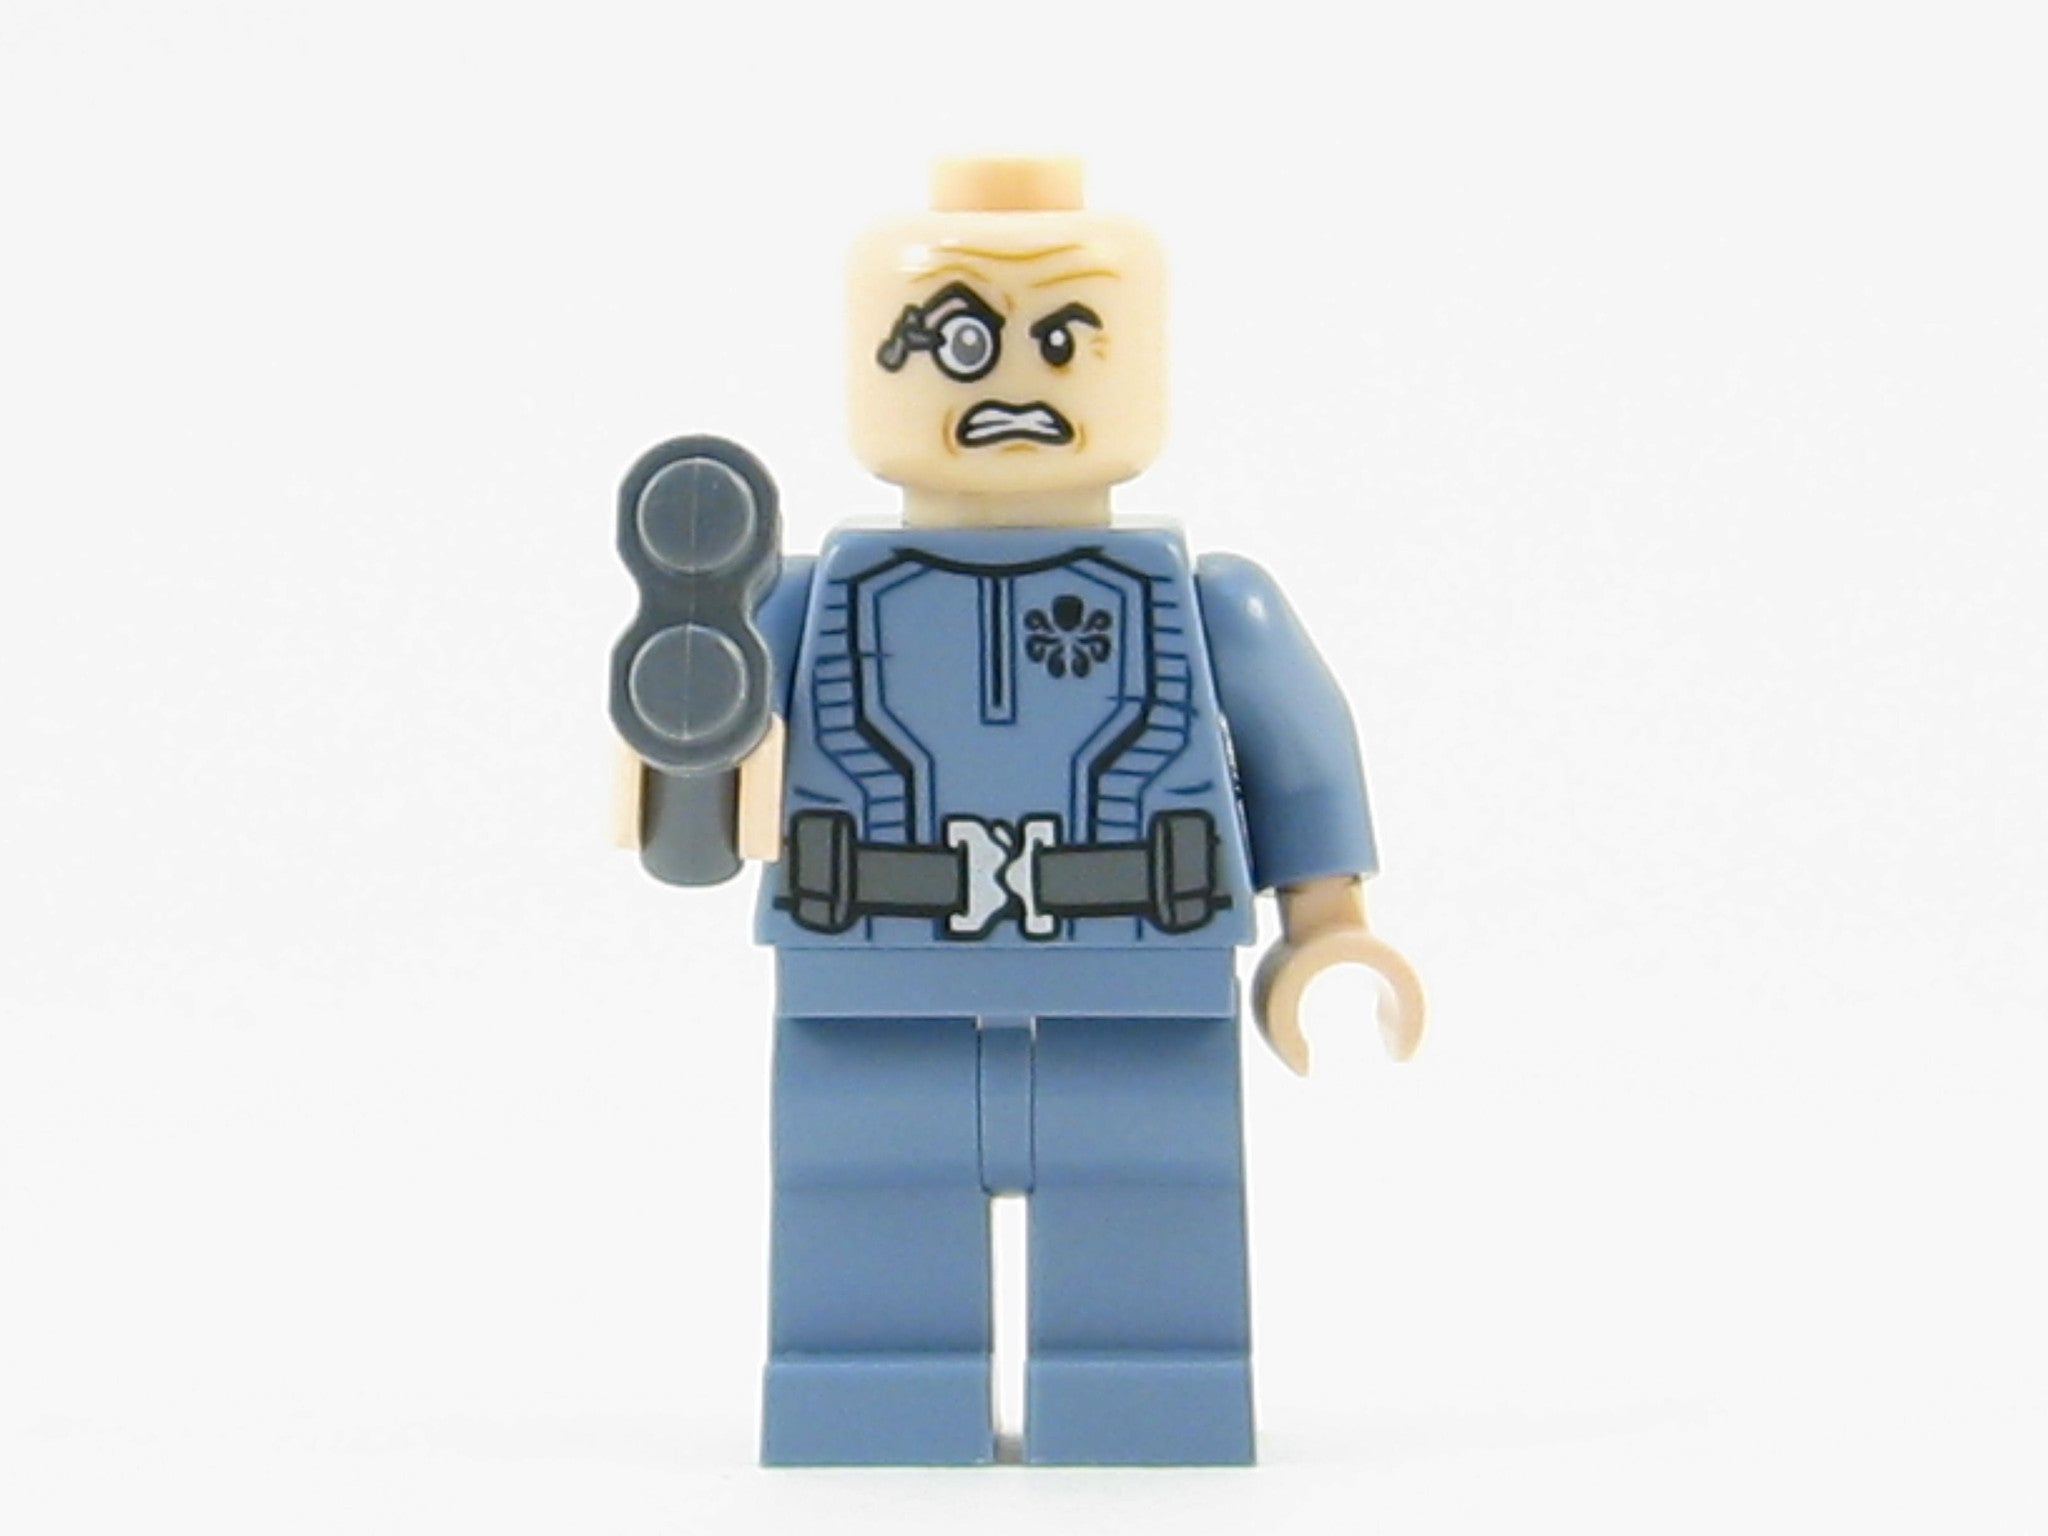 LEGO Marvel Super Heroes Baron Von Strucker Minifigure Mini Fig